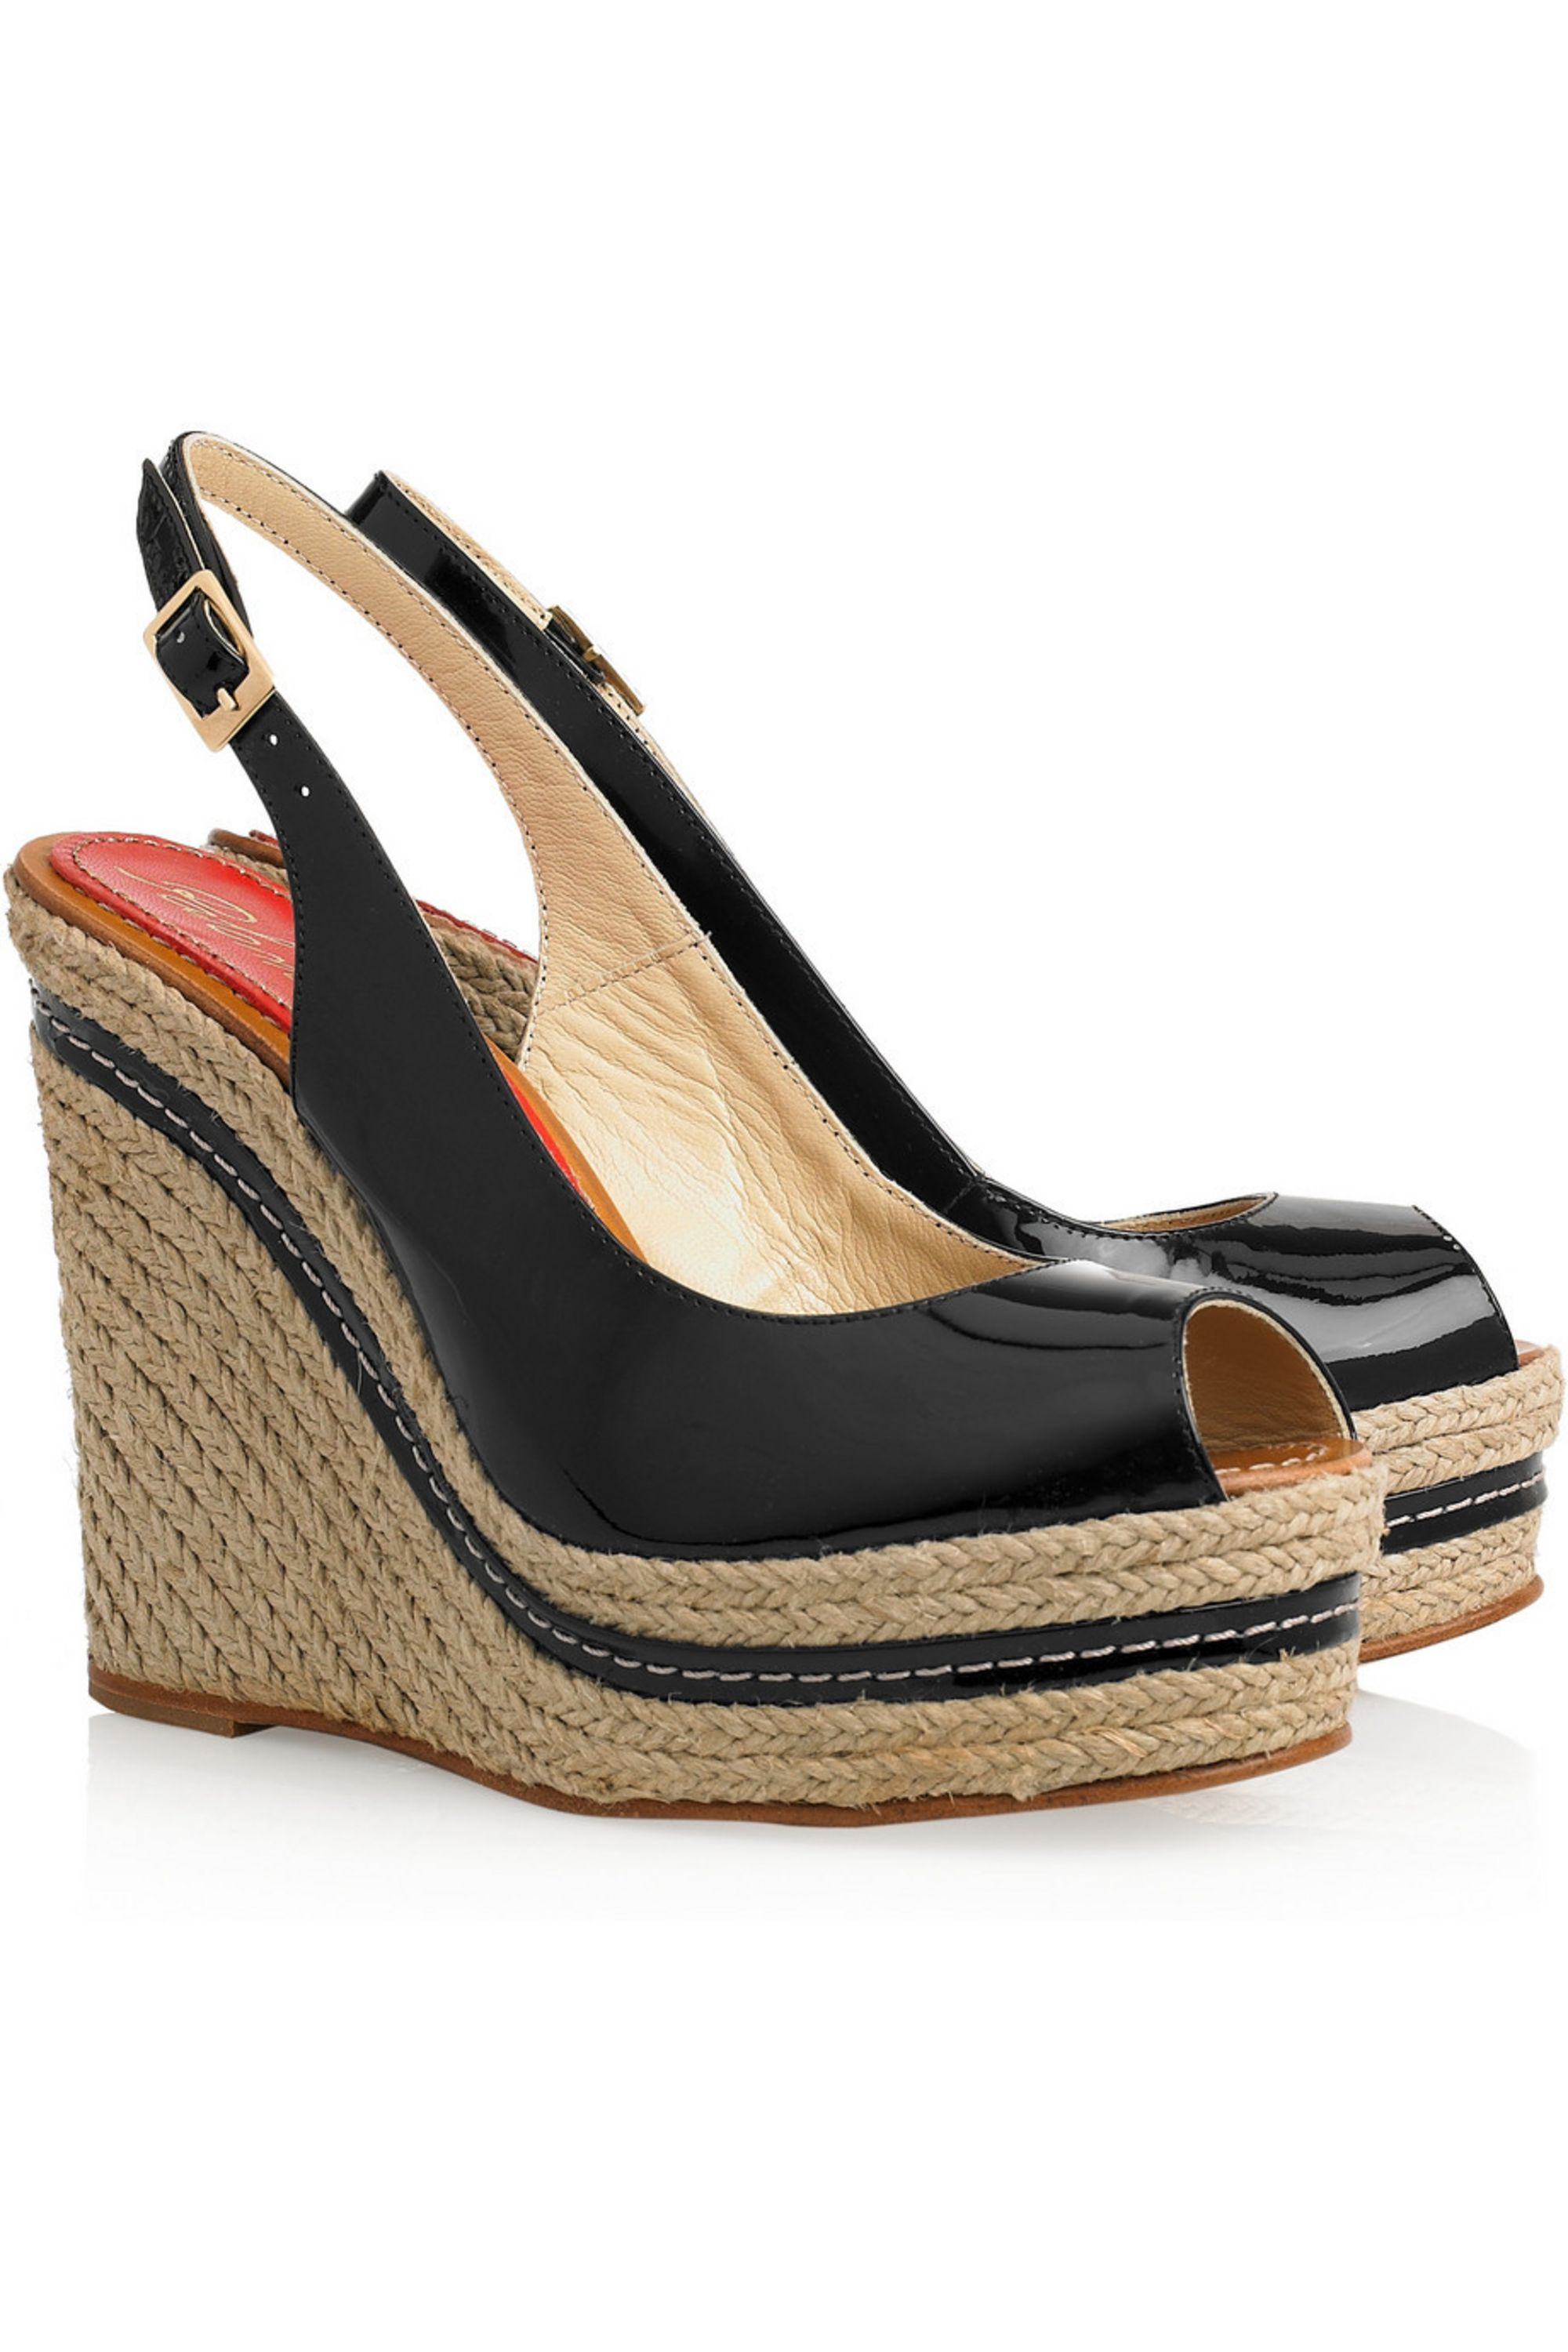 Paloma Barceló Lucy patent-leather espadrille wedge sandals